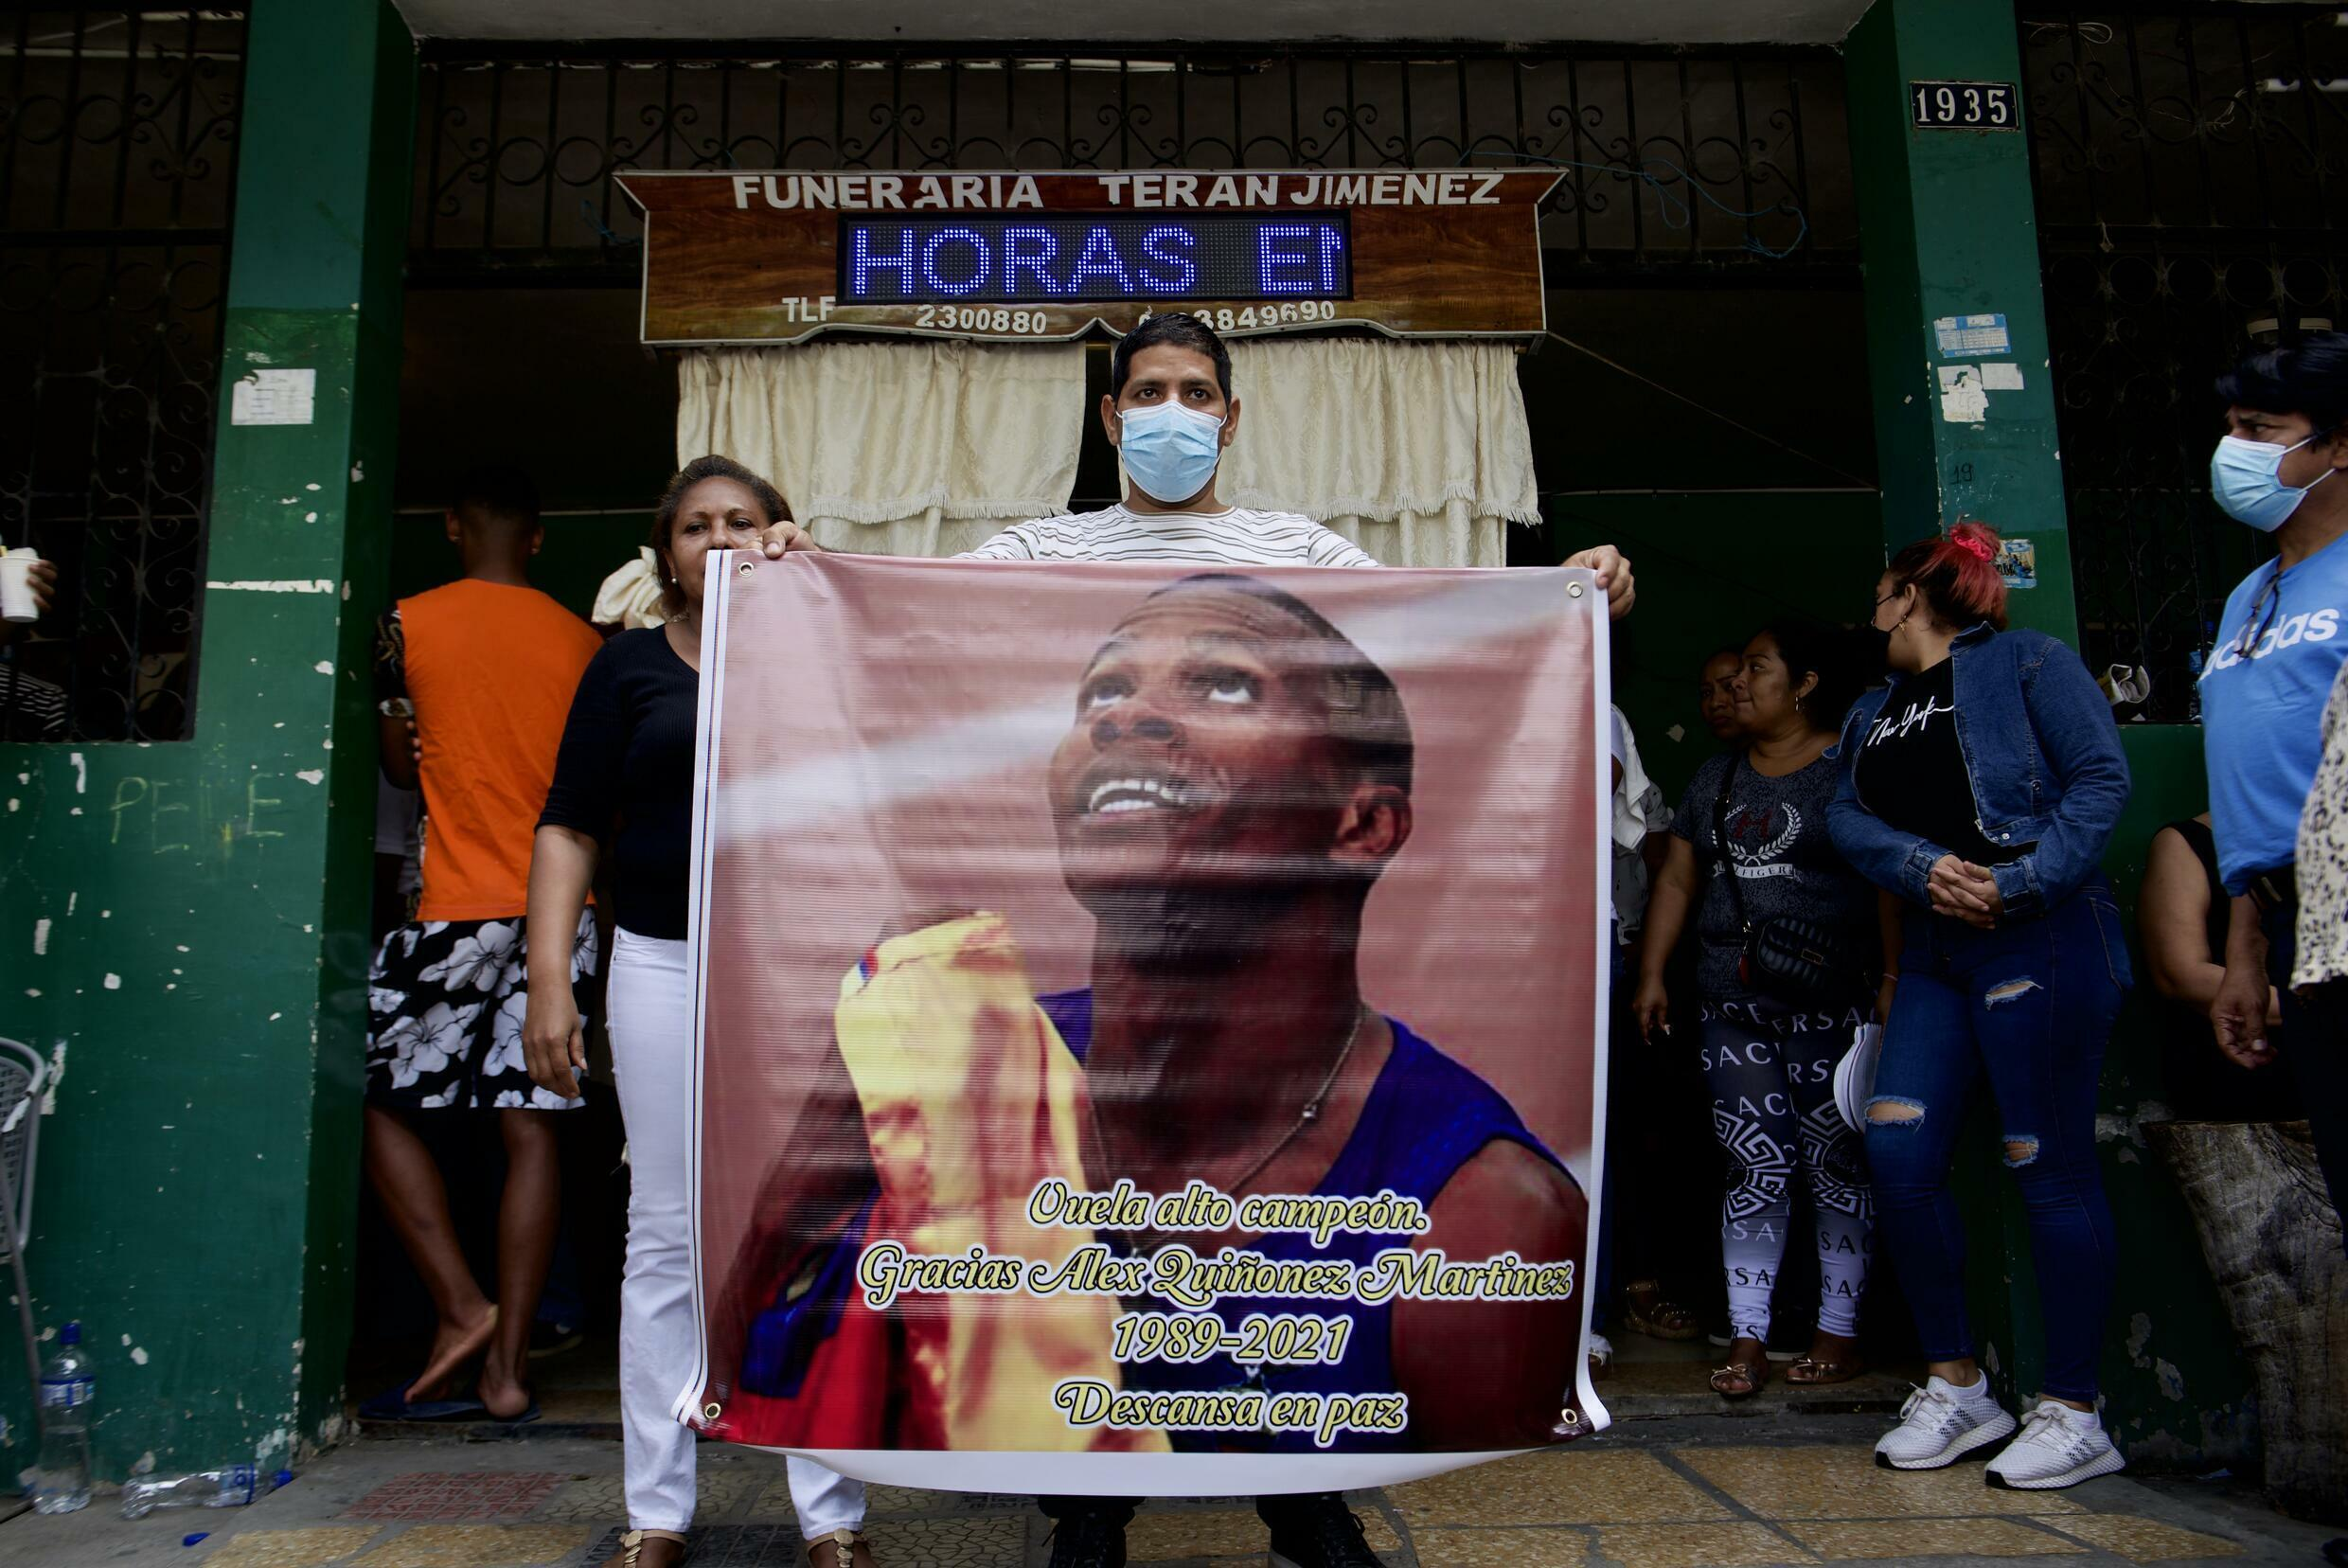 Ecuadorian Olympic sprinter Alex Quiñonez, 32, was killed in the port city of Guayaquil on Friday night